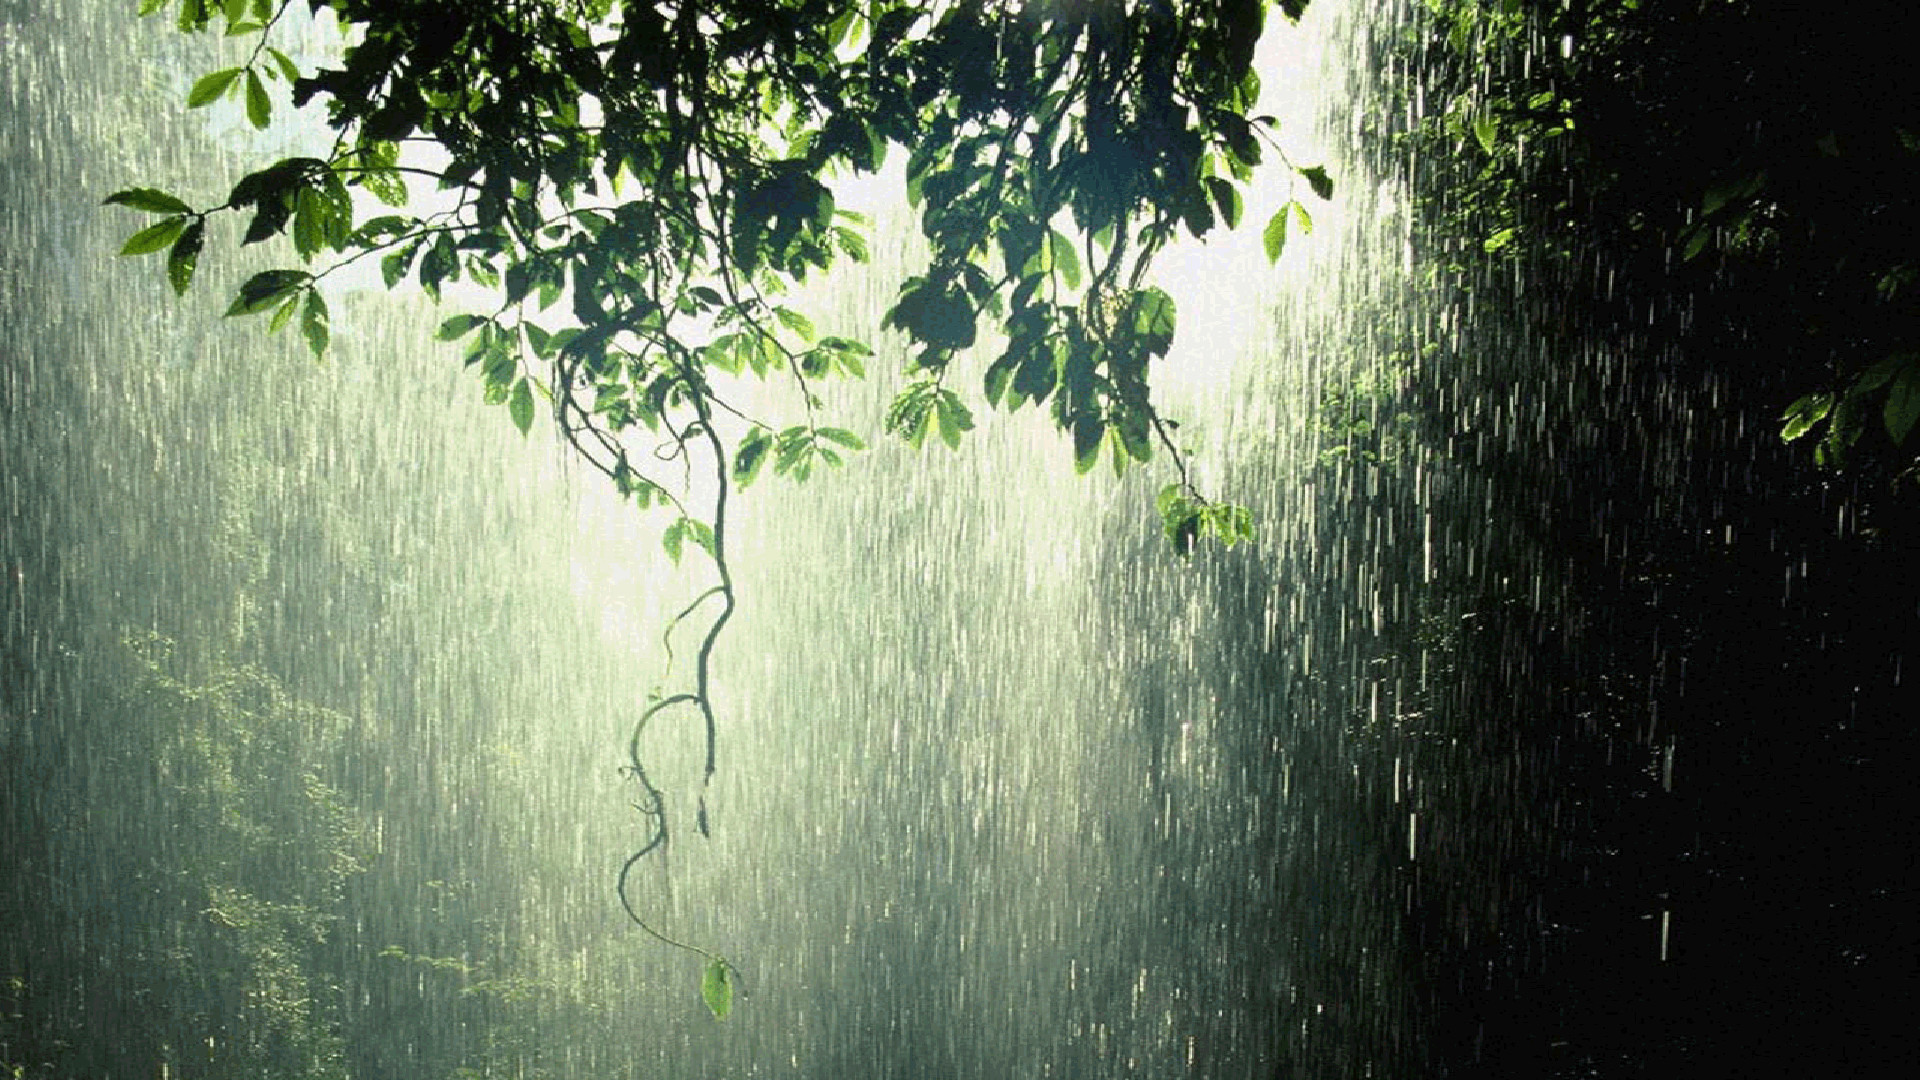 Summer Android Wallpaper Quotes Rain Wallpapers Hd 84 Background Pictures